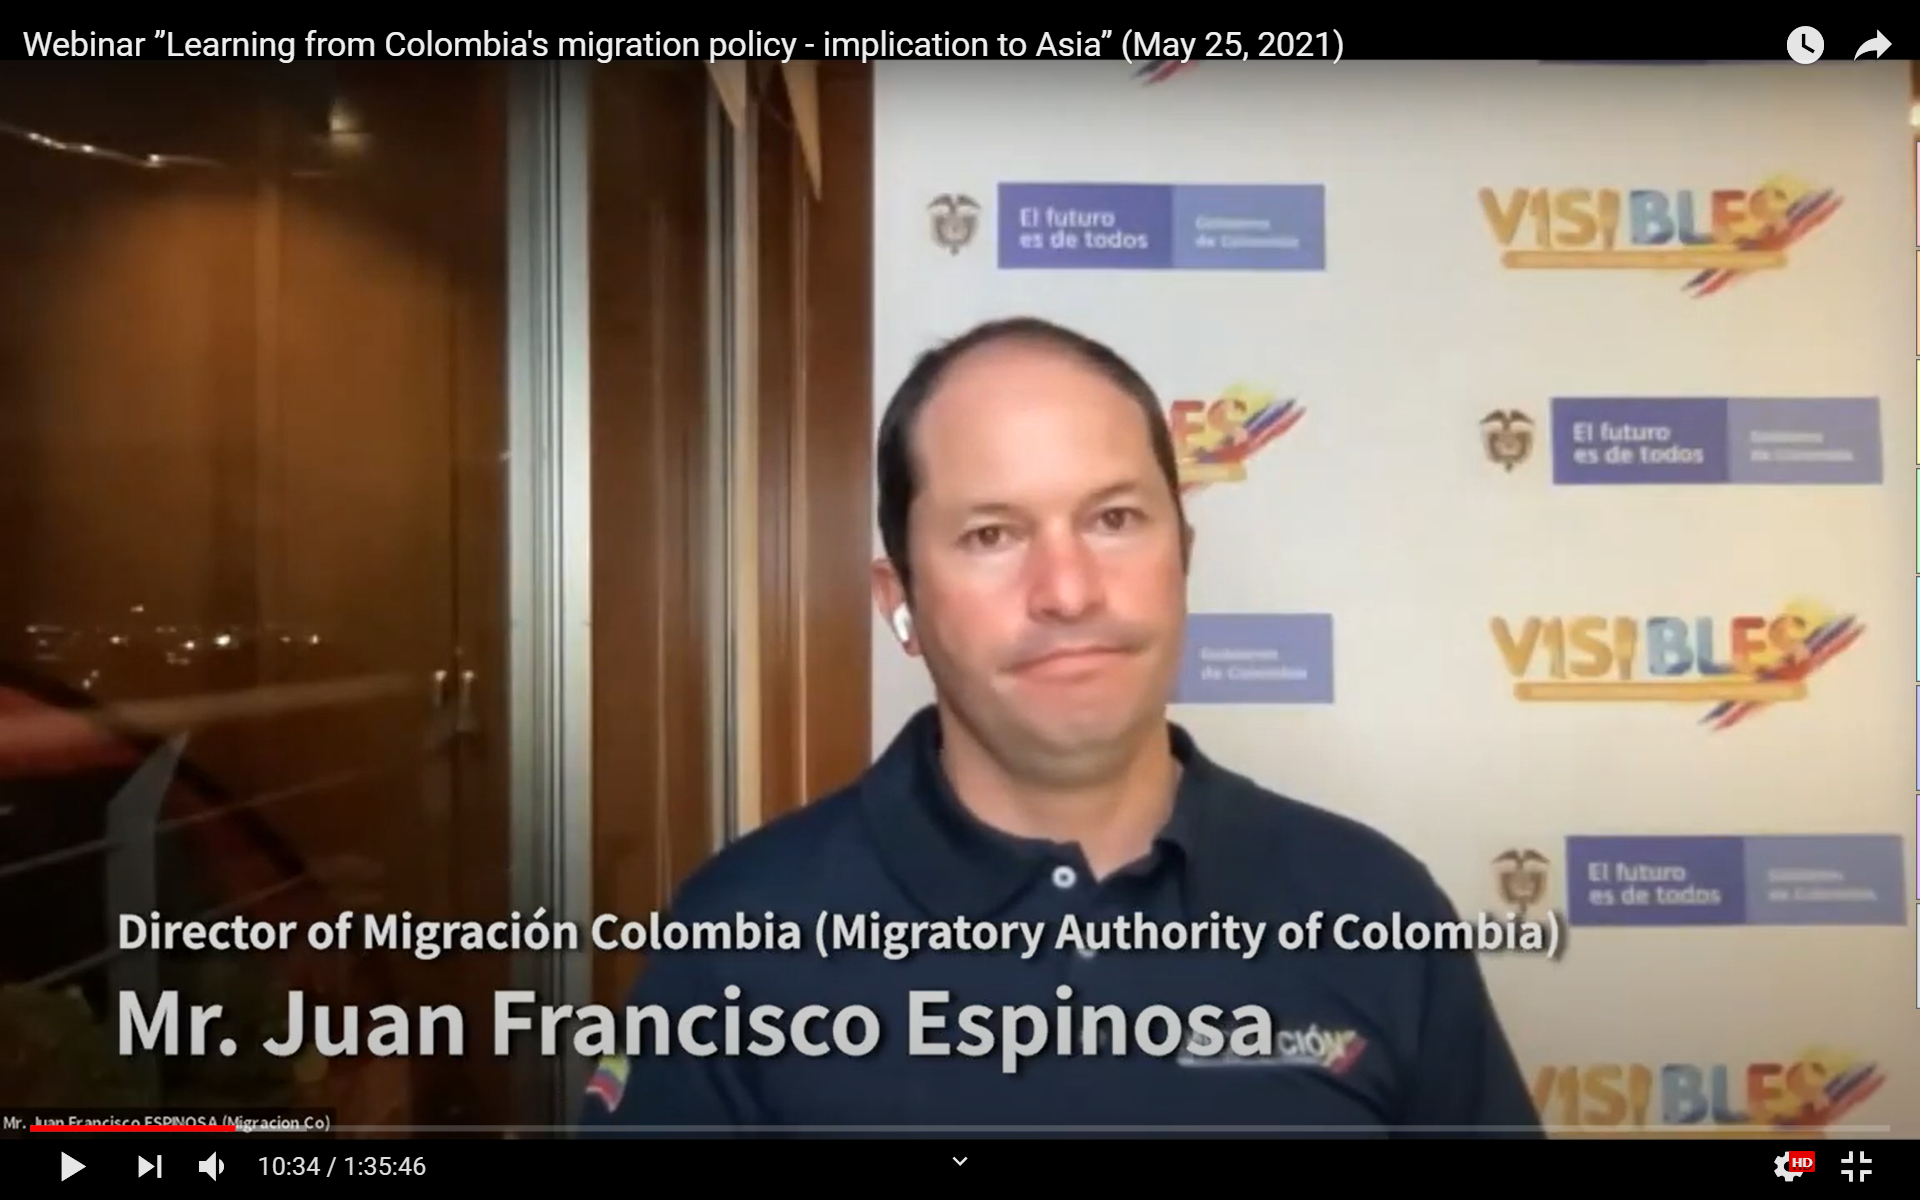 """Webinar """"Learning from Colombia's migration policy - implication to Asia"""" (May 25, 2021)"""